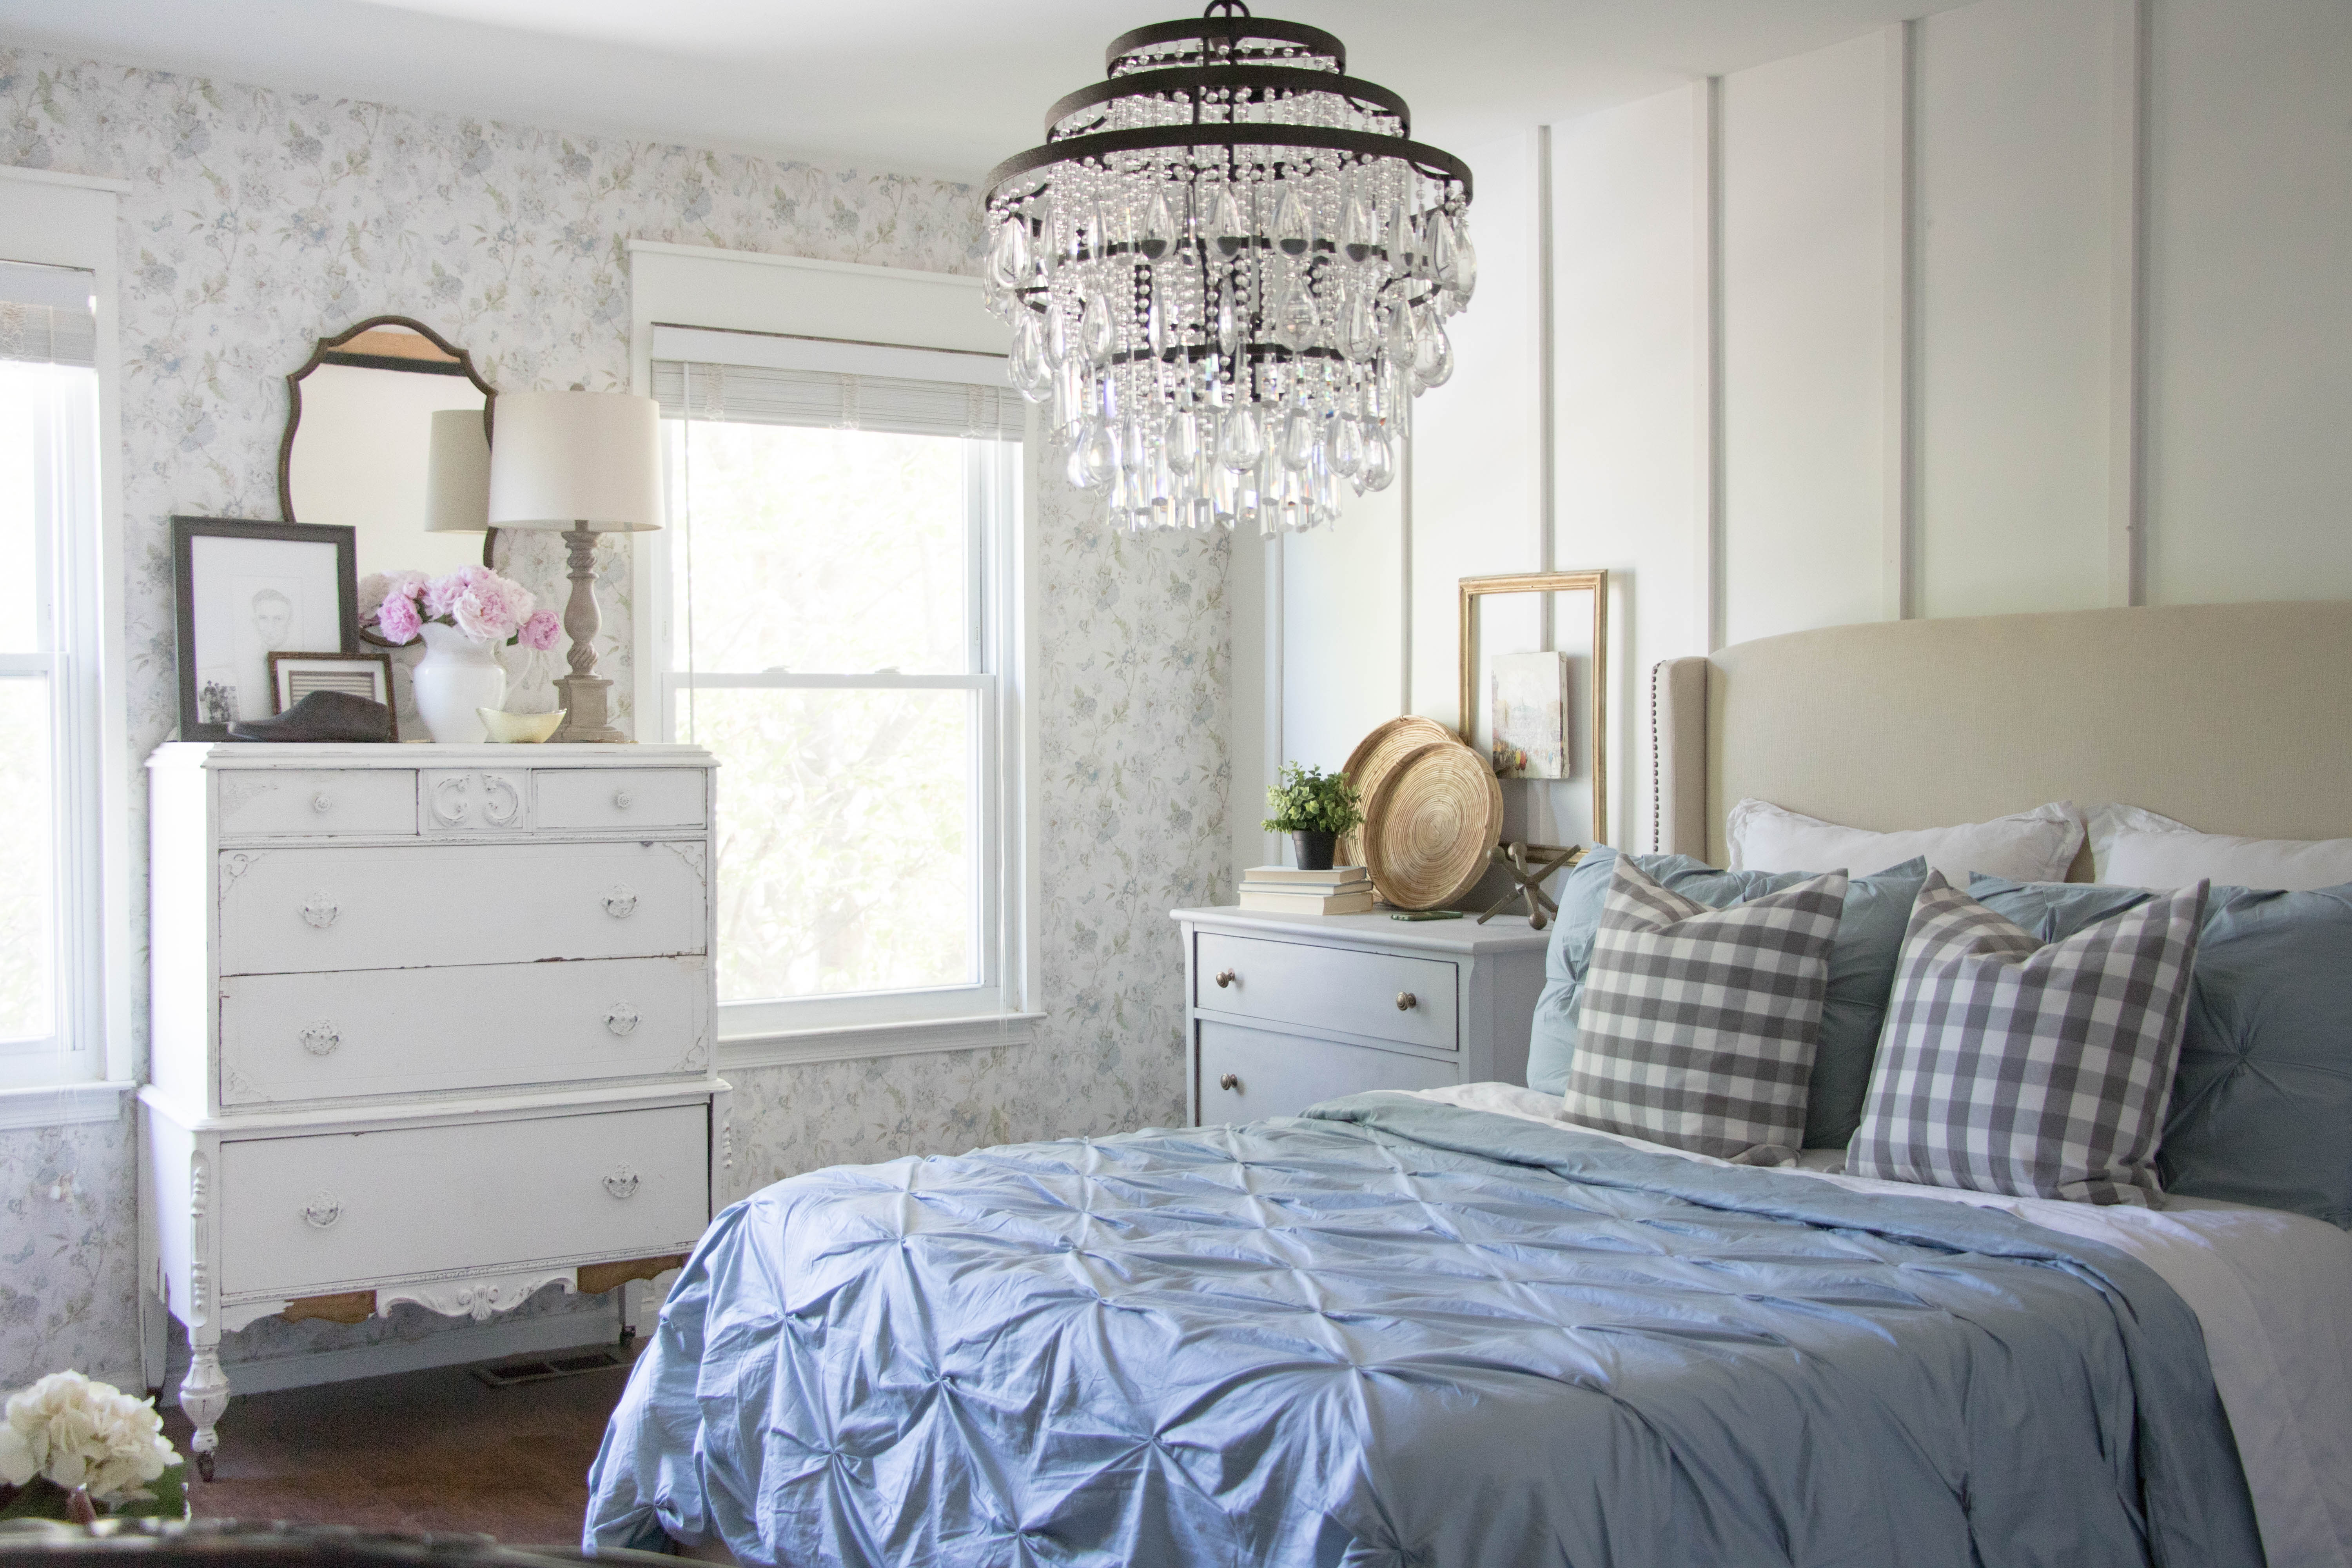 Vintage French Cottage Bedroom from Seeing Lavender Lane